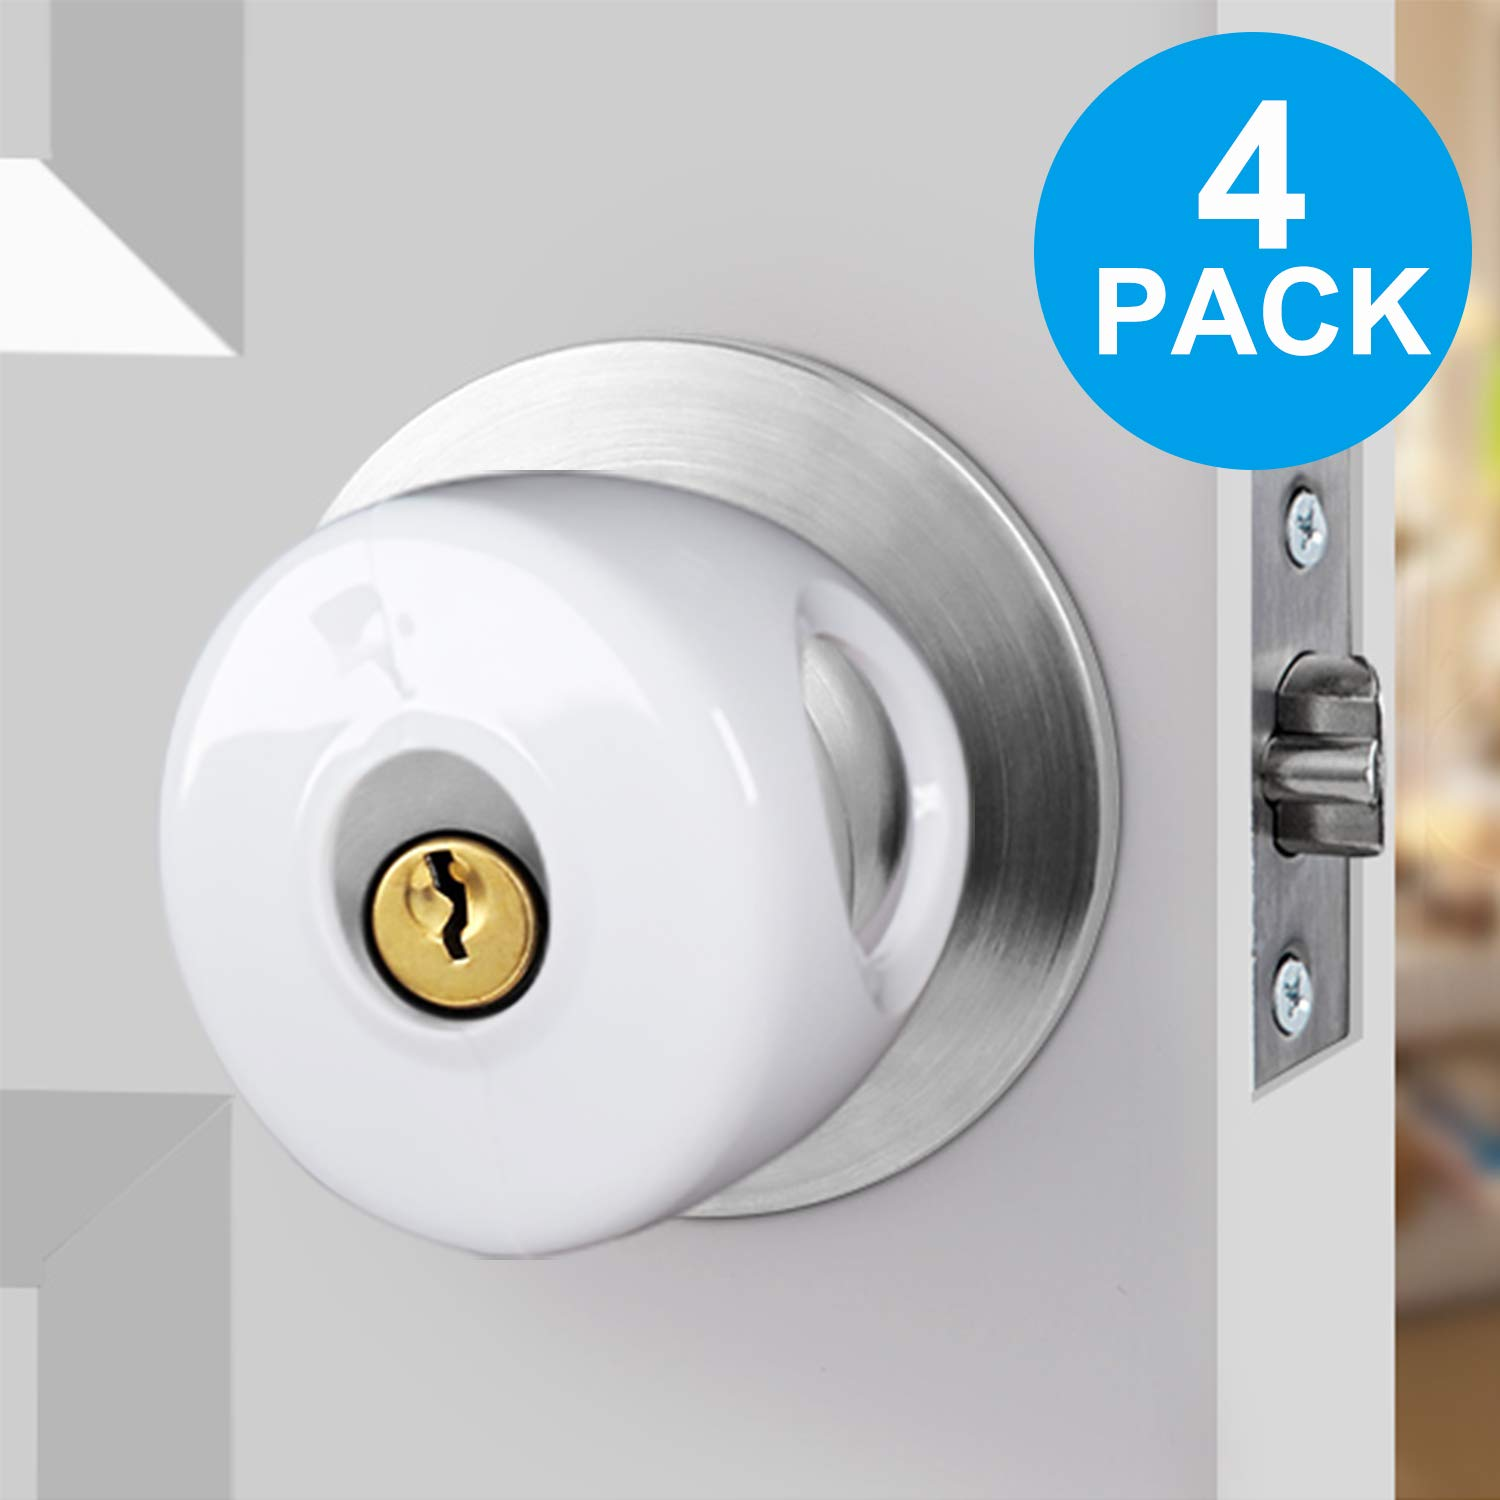 Door Knob Safety Cover for Kids,TUSUNNY Baby Safety Door Handle Cover,Easy to Install and Remove on Doors,Universal Design- FIT Most KNOBS,Child Proof Doors - Toddler and Baby Safety(4 Pack)